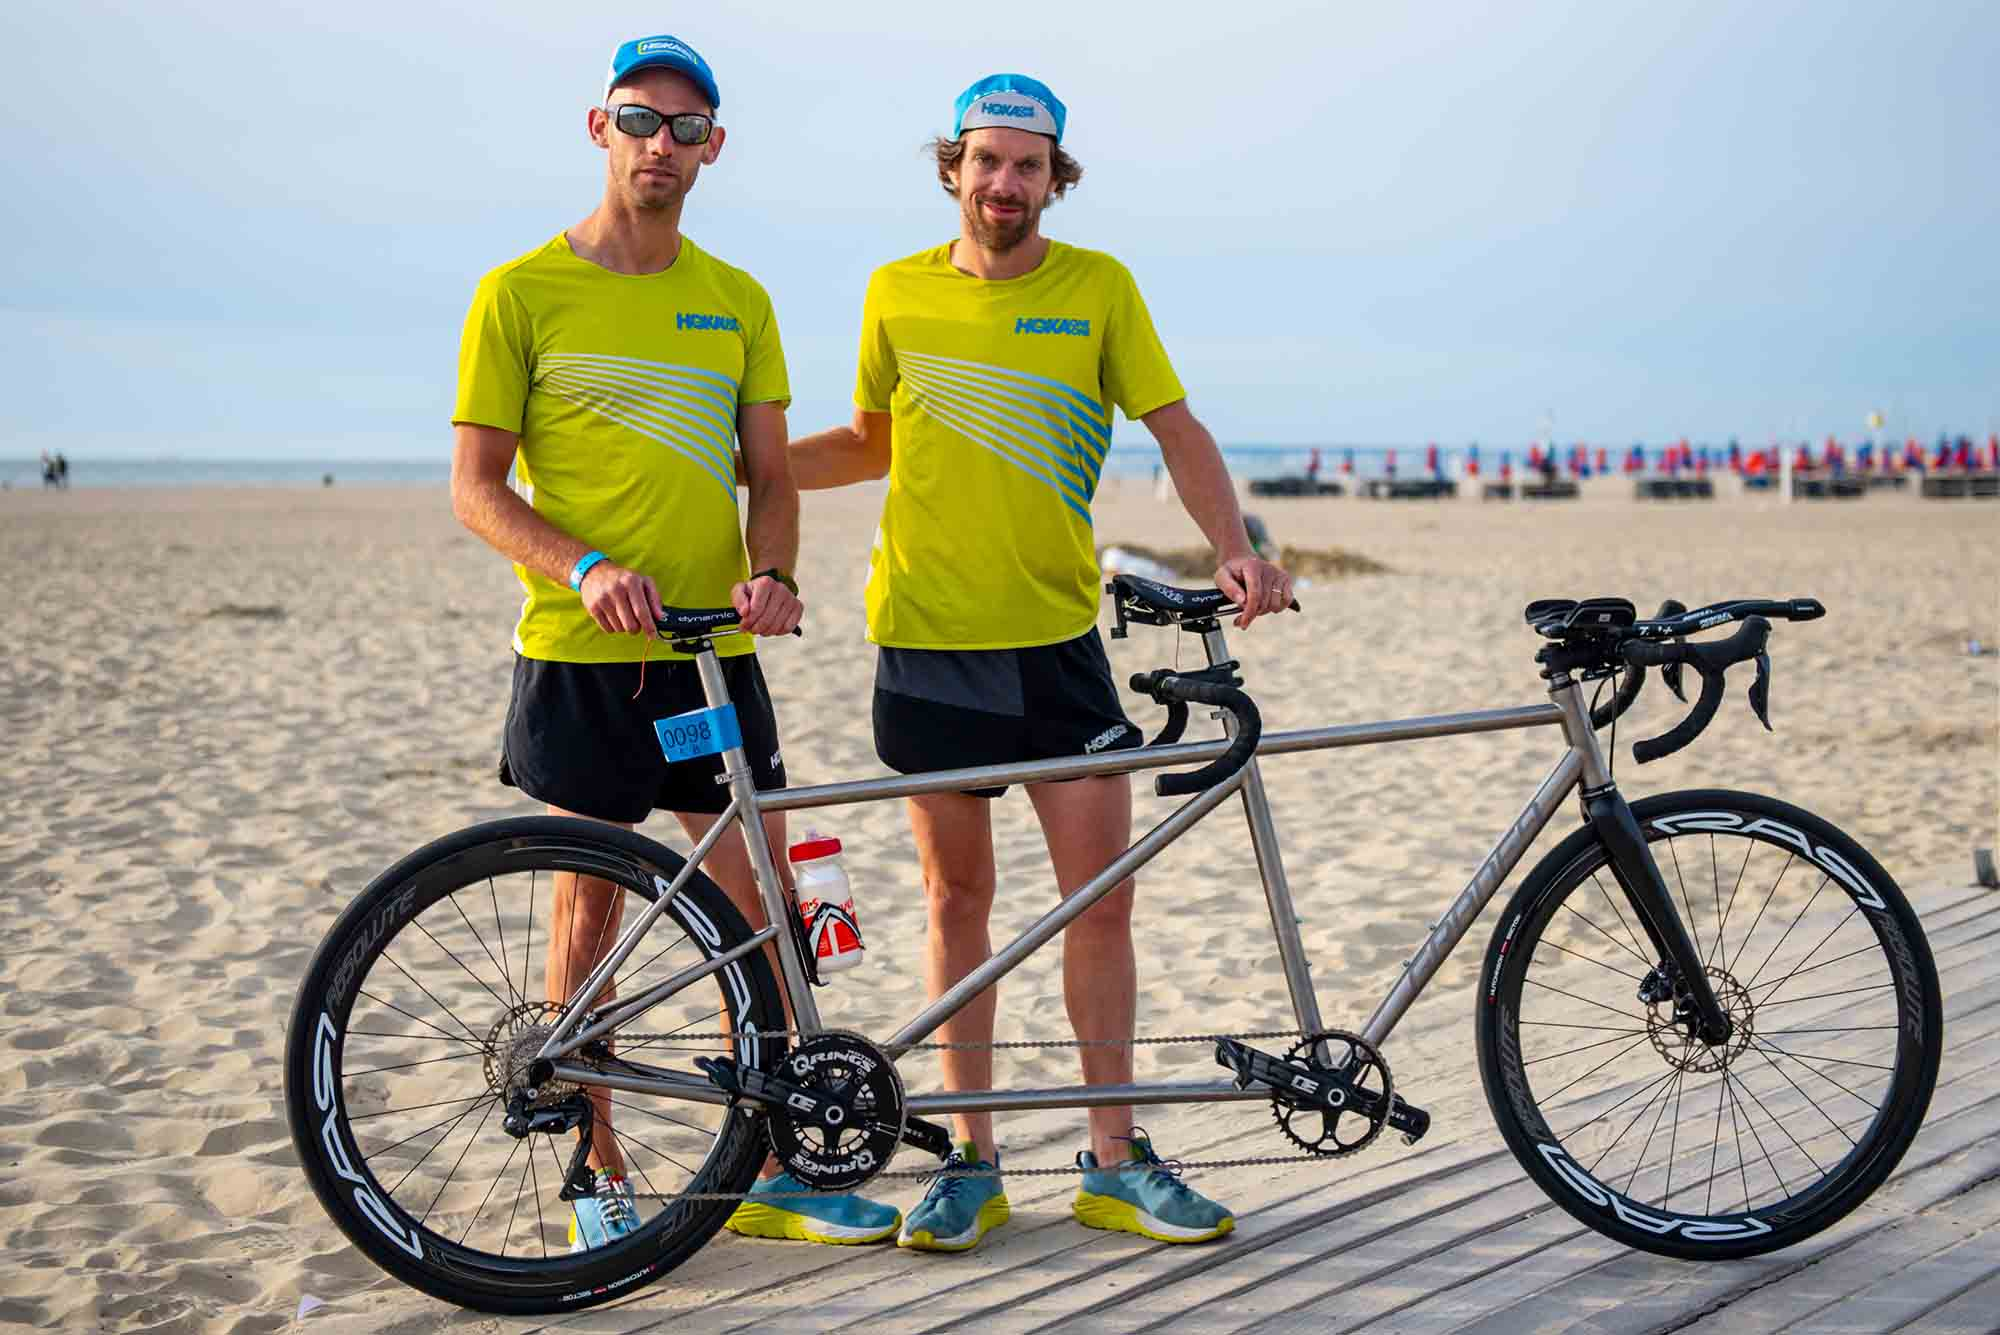 HOKA athletes Antoine Perel and Olivier Lyoen stand by their tandem bike